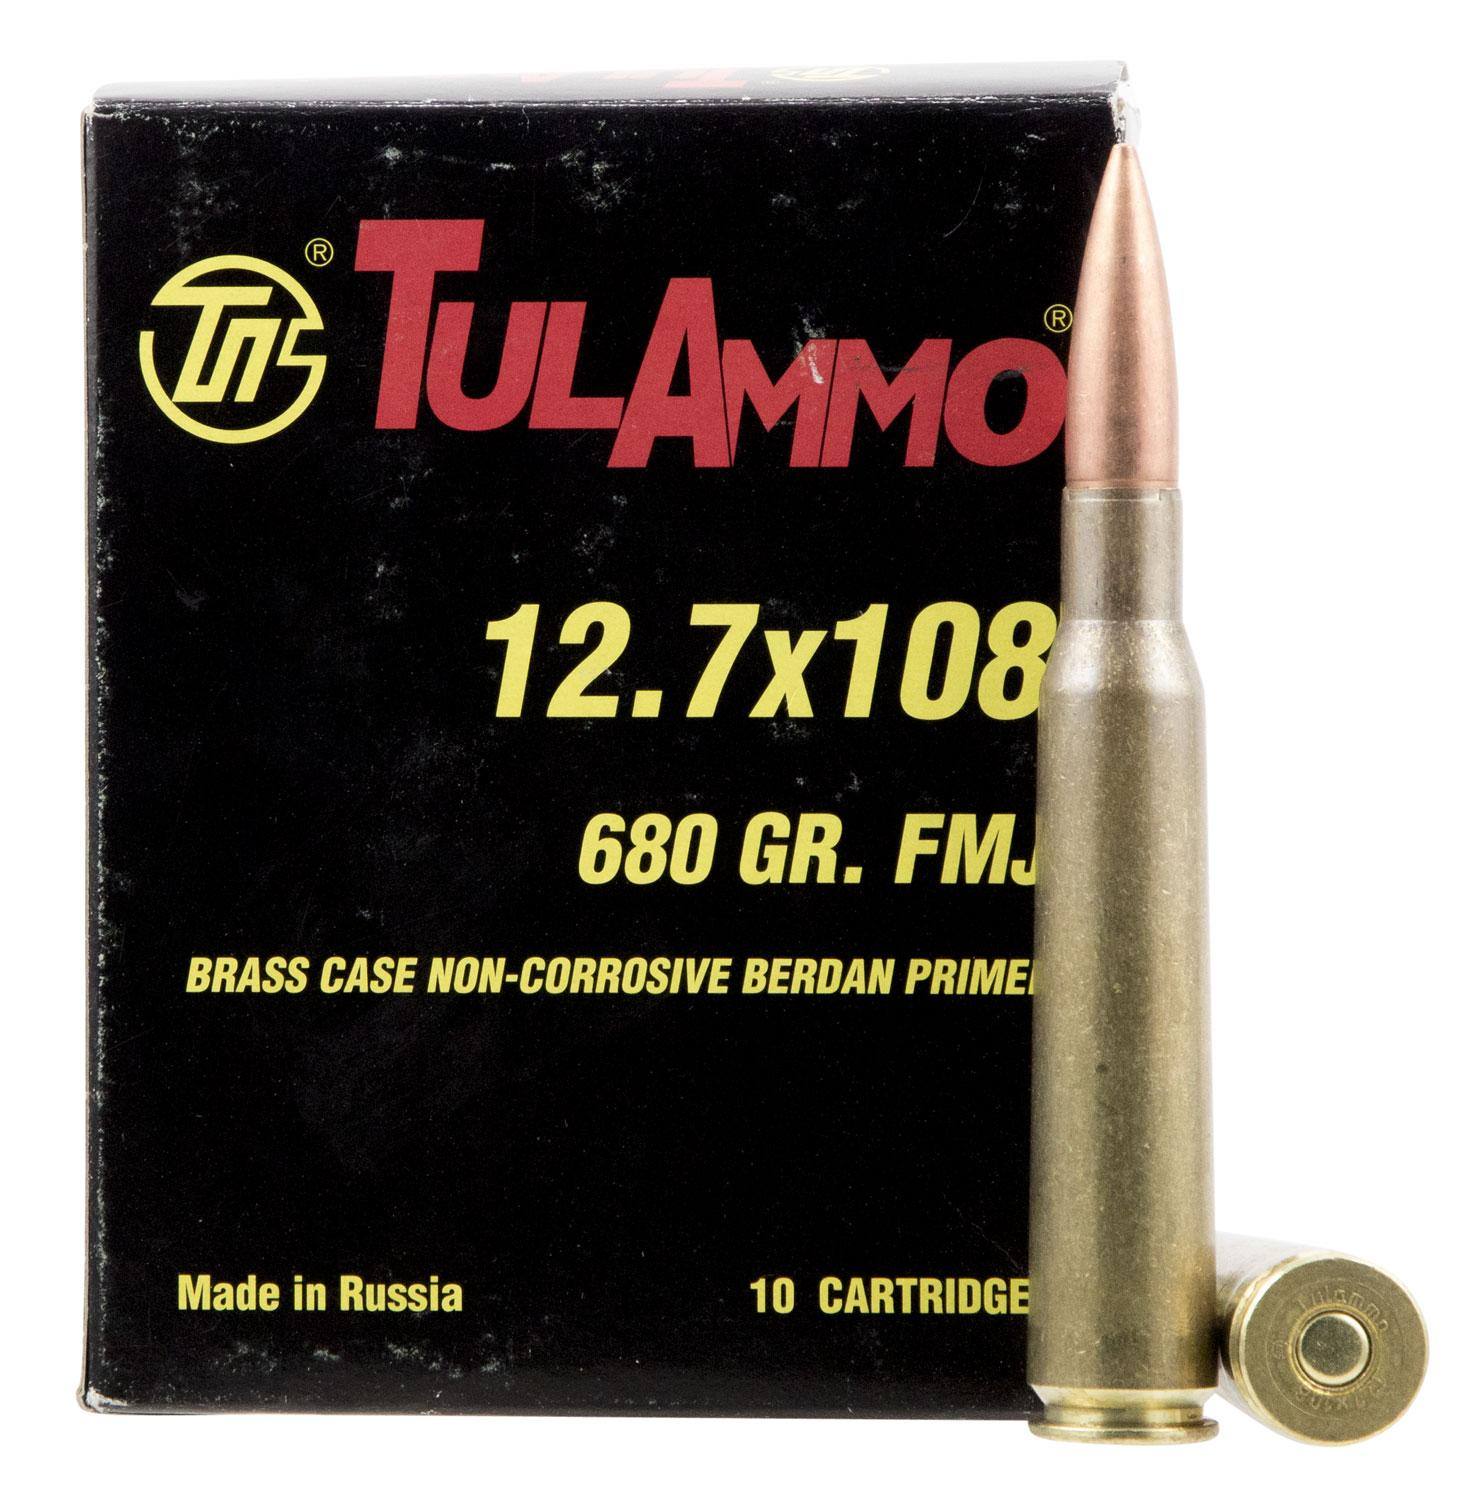 Tulammo Ta127101 Centerfire Rifle 12.7x108mm 680 Gr Full Metal Jacket 10 Bx/6 Cs